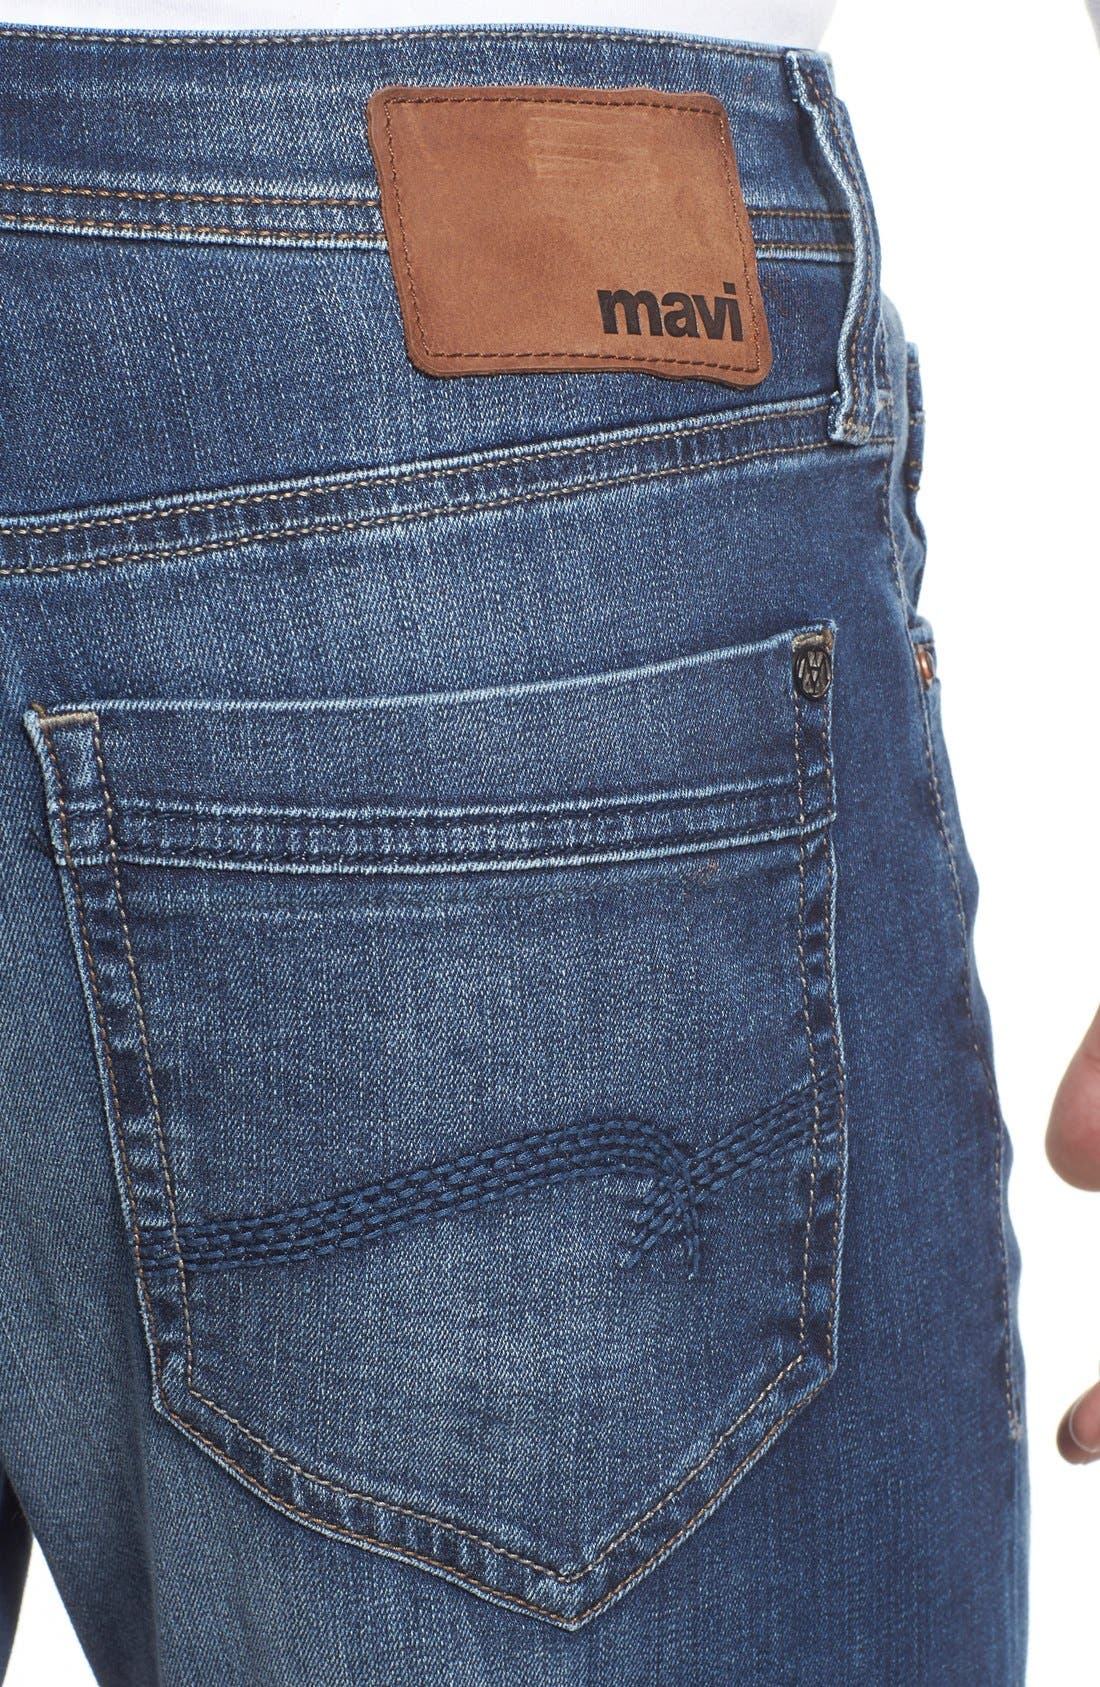 'Matt' Relaxed Fit Jeans,                             Alternate thumbnail 4, color,                             MID INDIGO COOPER